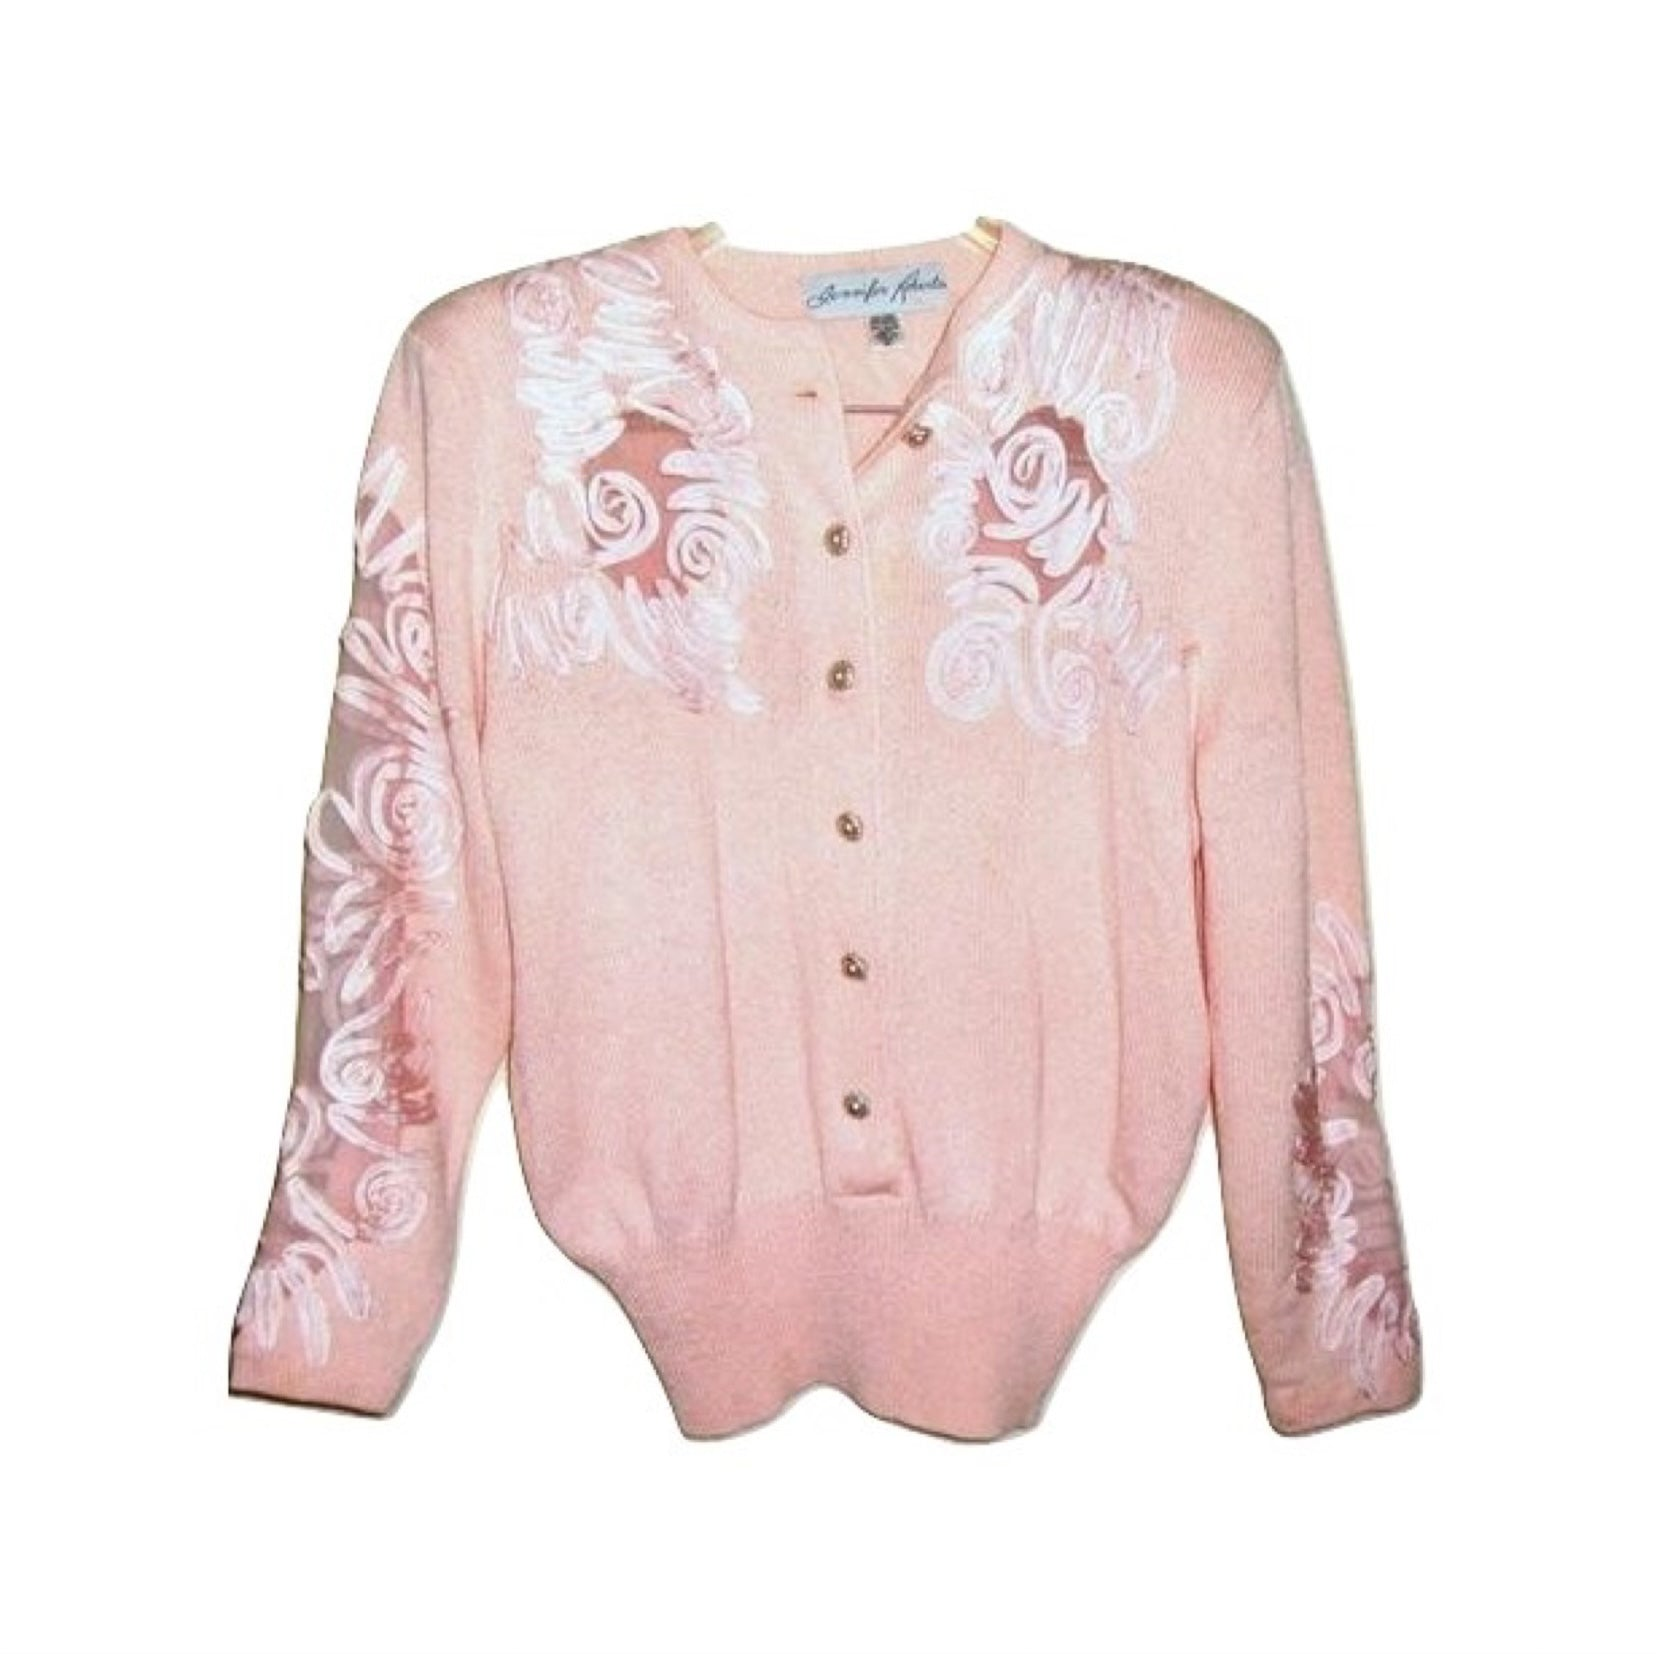 Vintage JENNIFER ROBERTS Embroidered Rhinestone Sweater Pearl Buttons